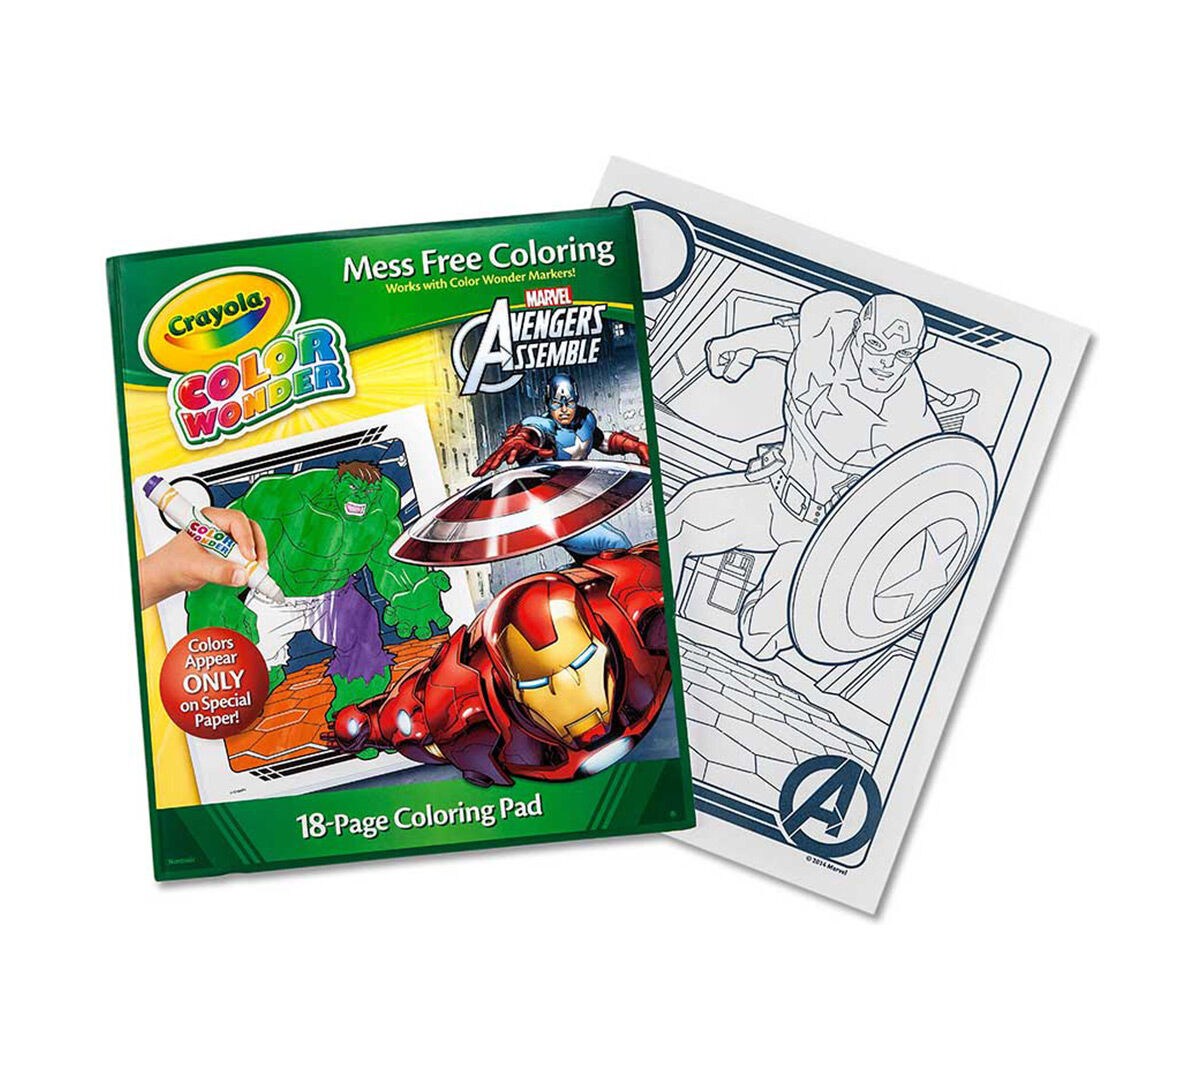 20 Mess Free Coloring Books Pictures And Ideas On Meta Networks